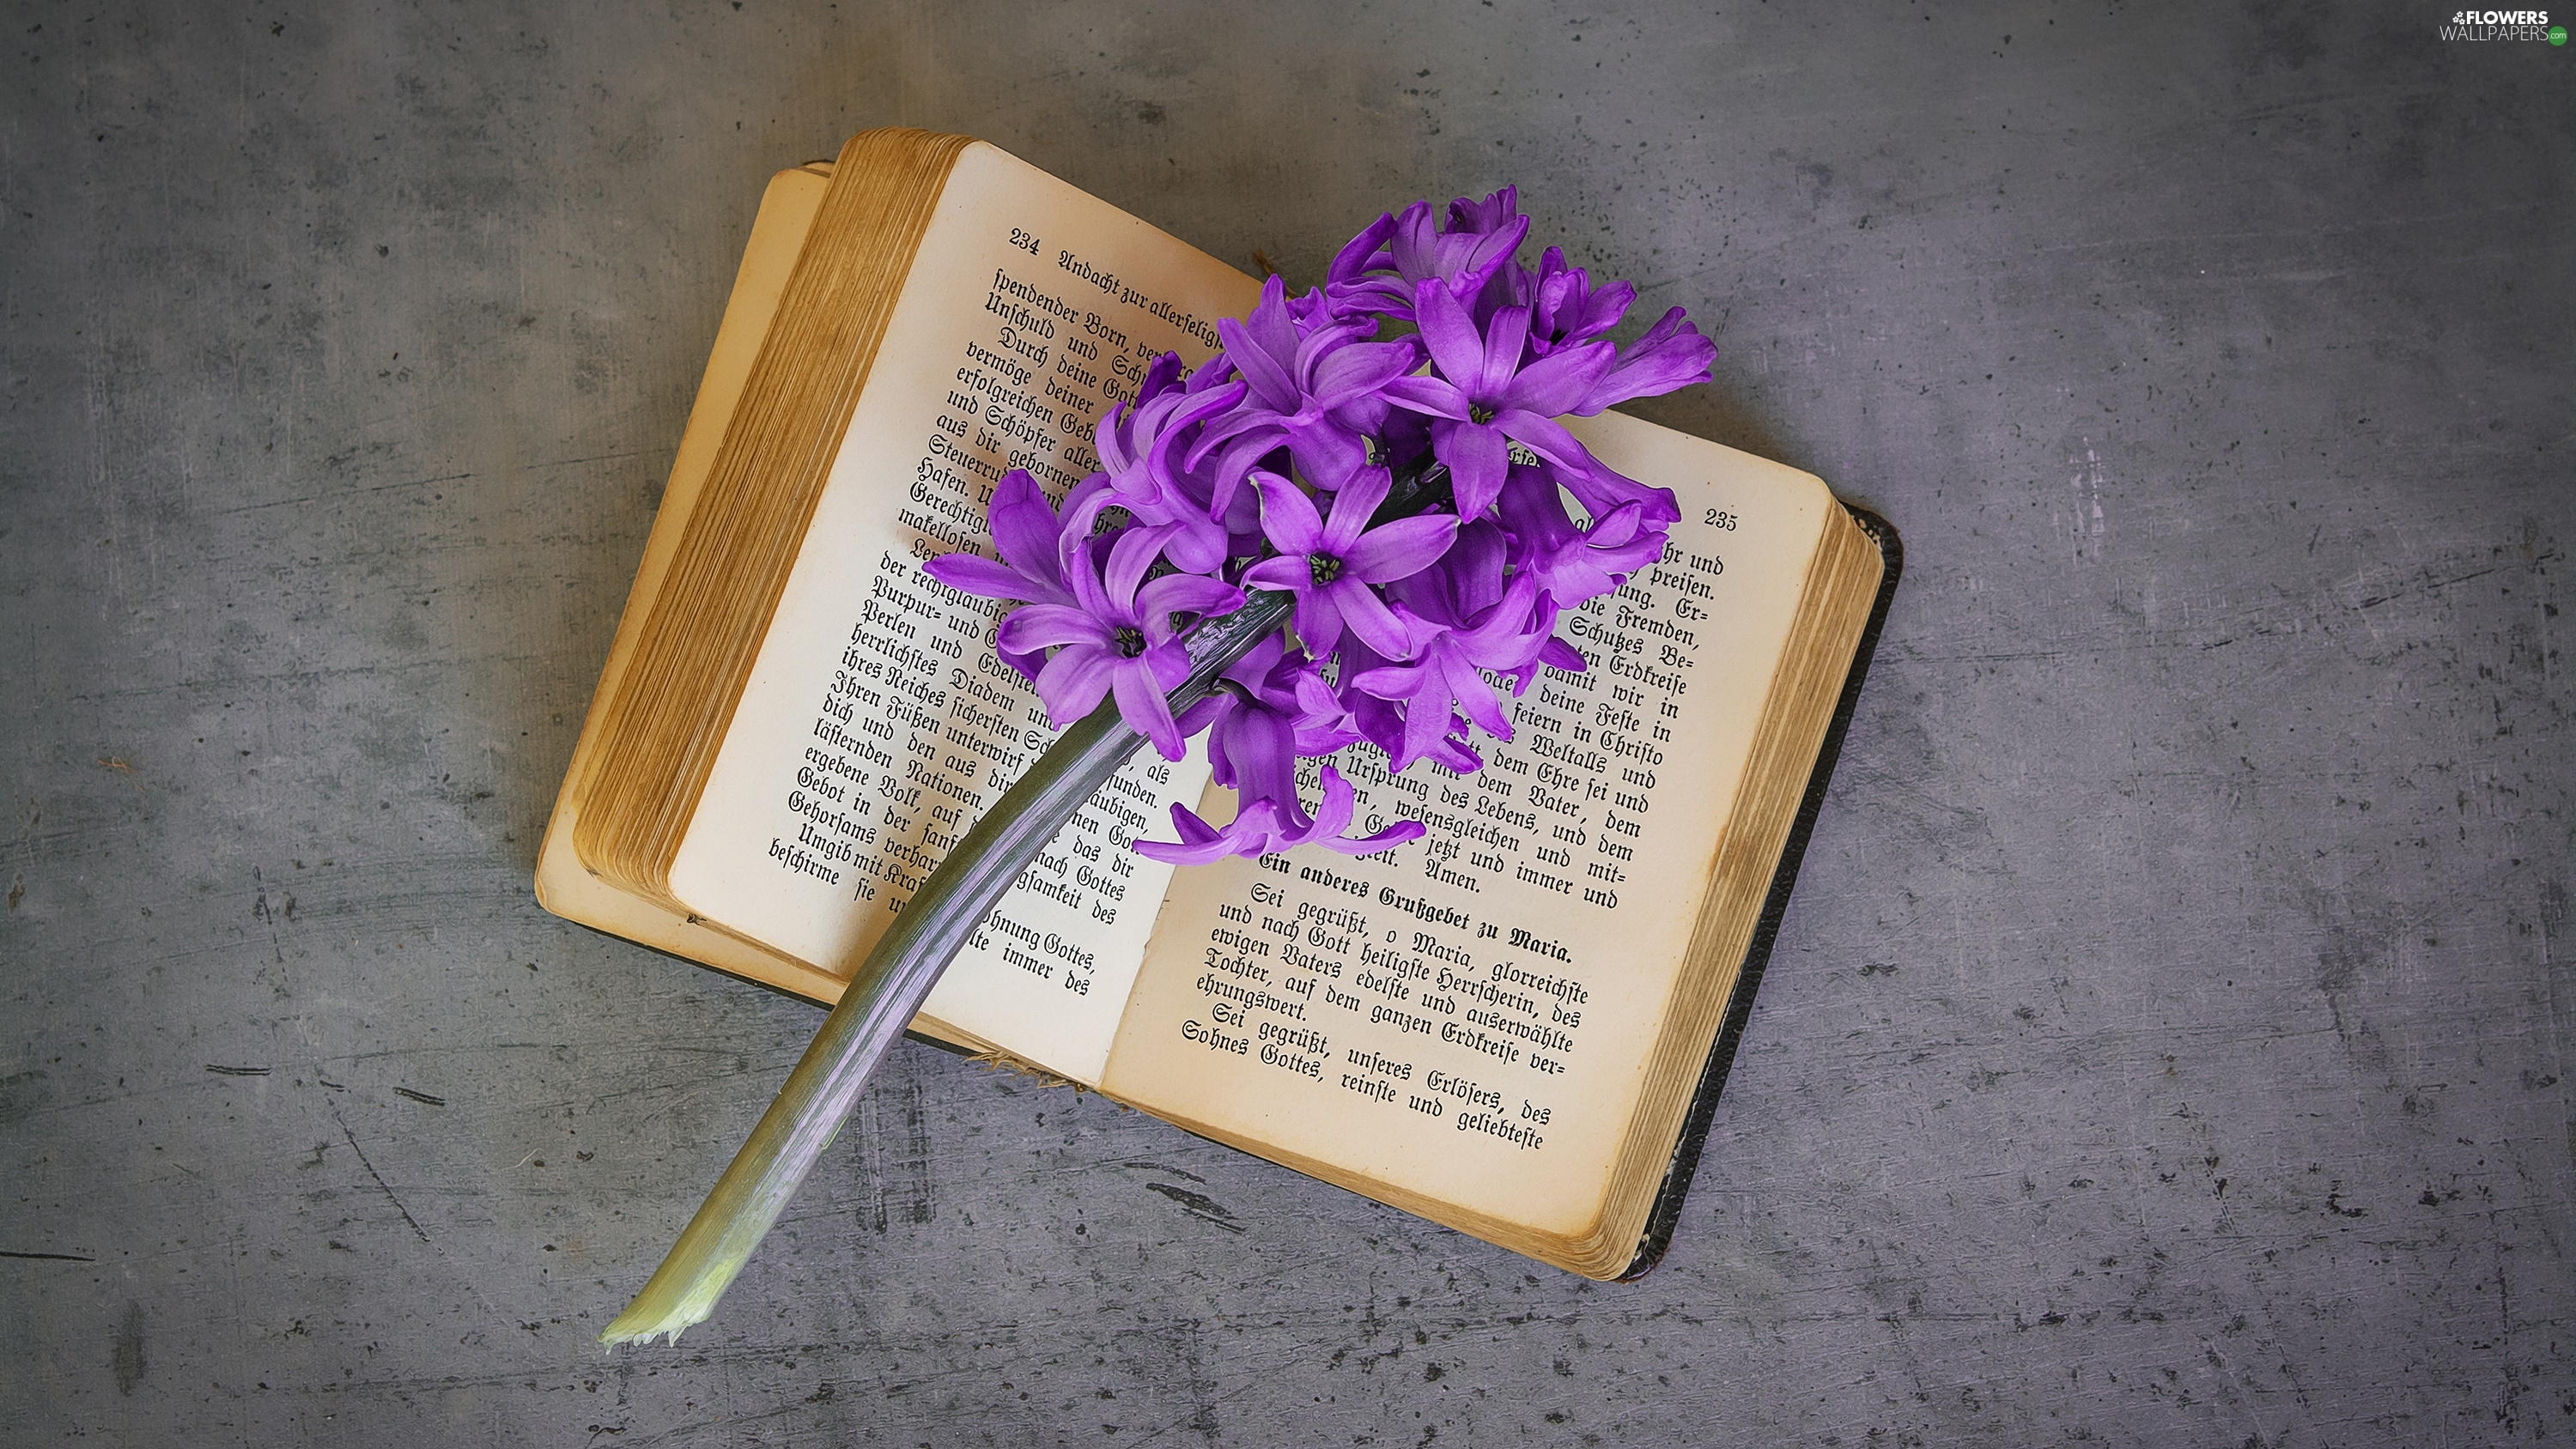 hyacinth, Book, Colourfull Flowers